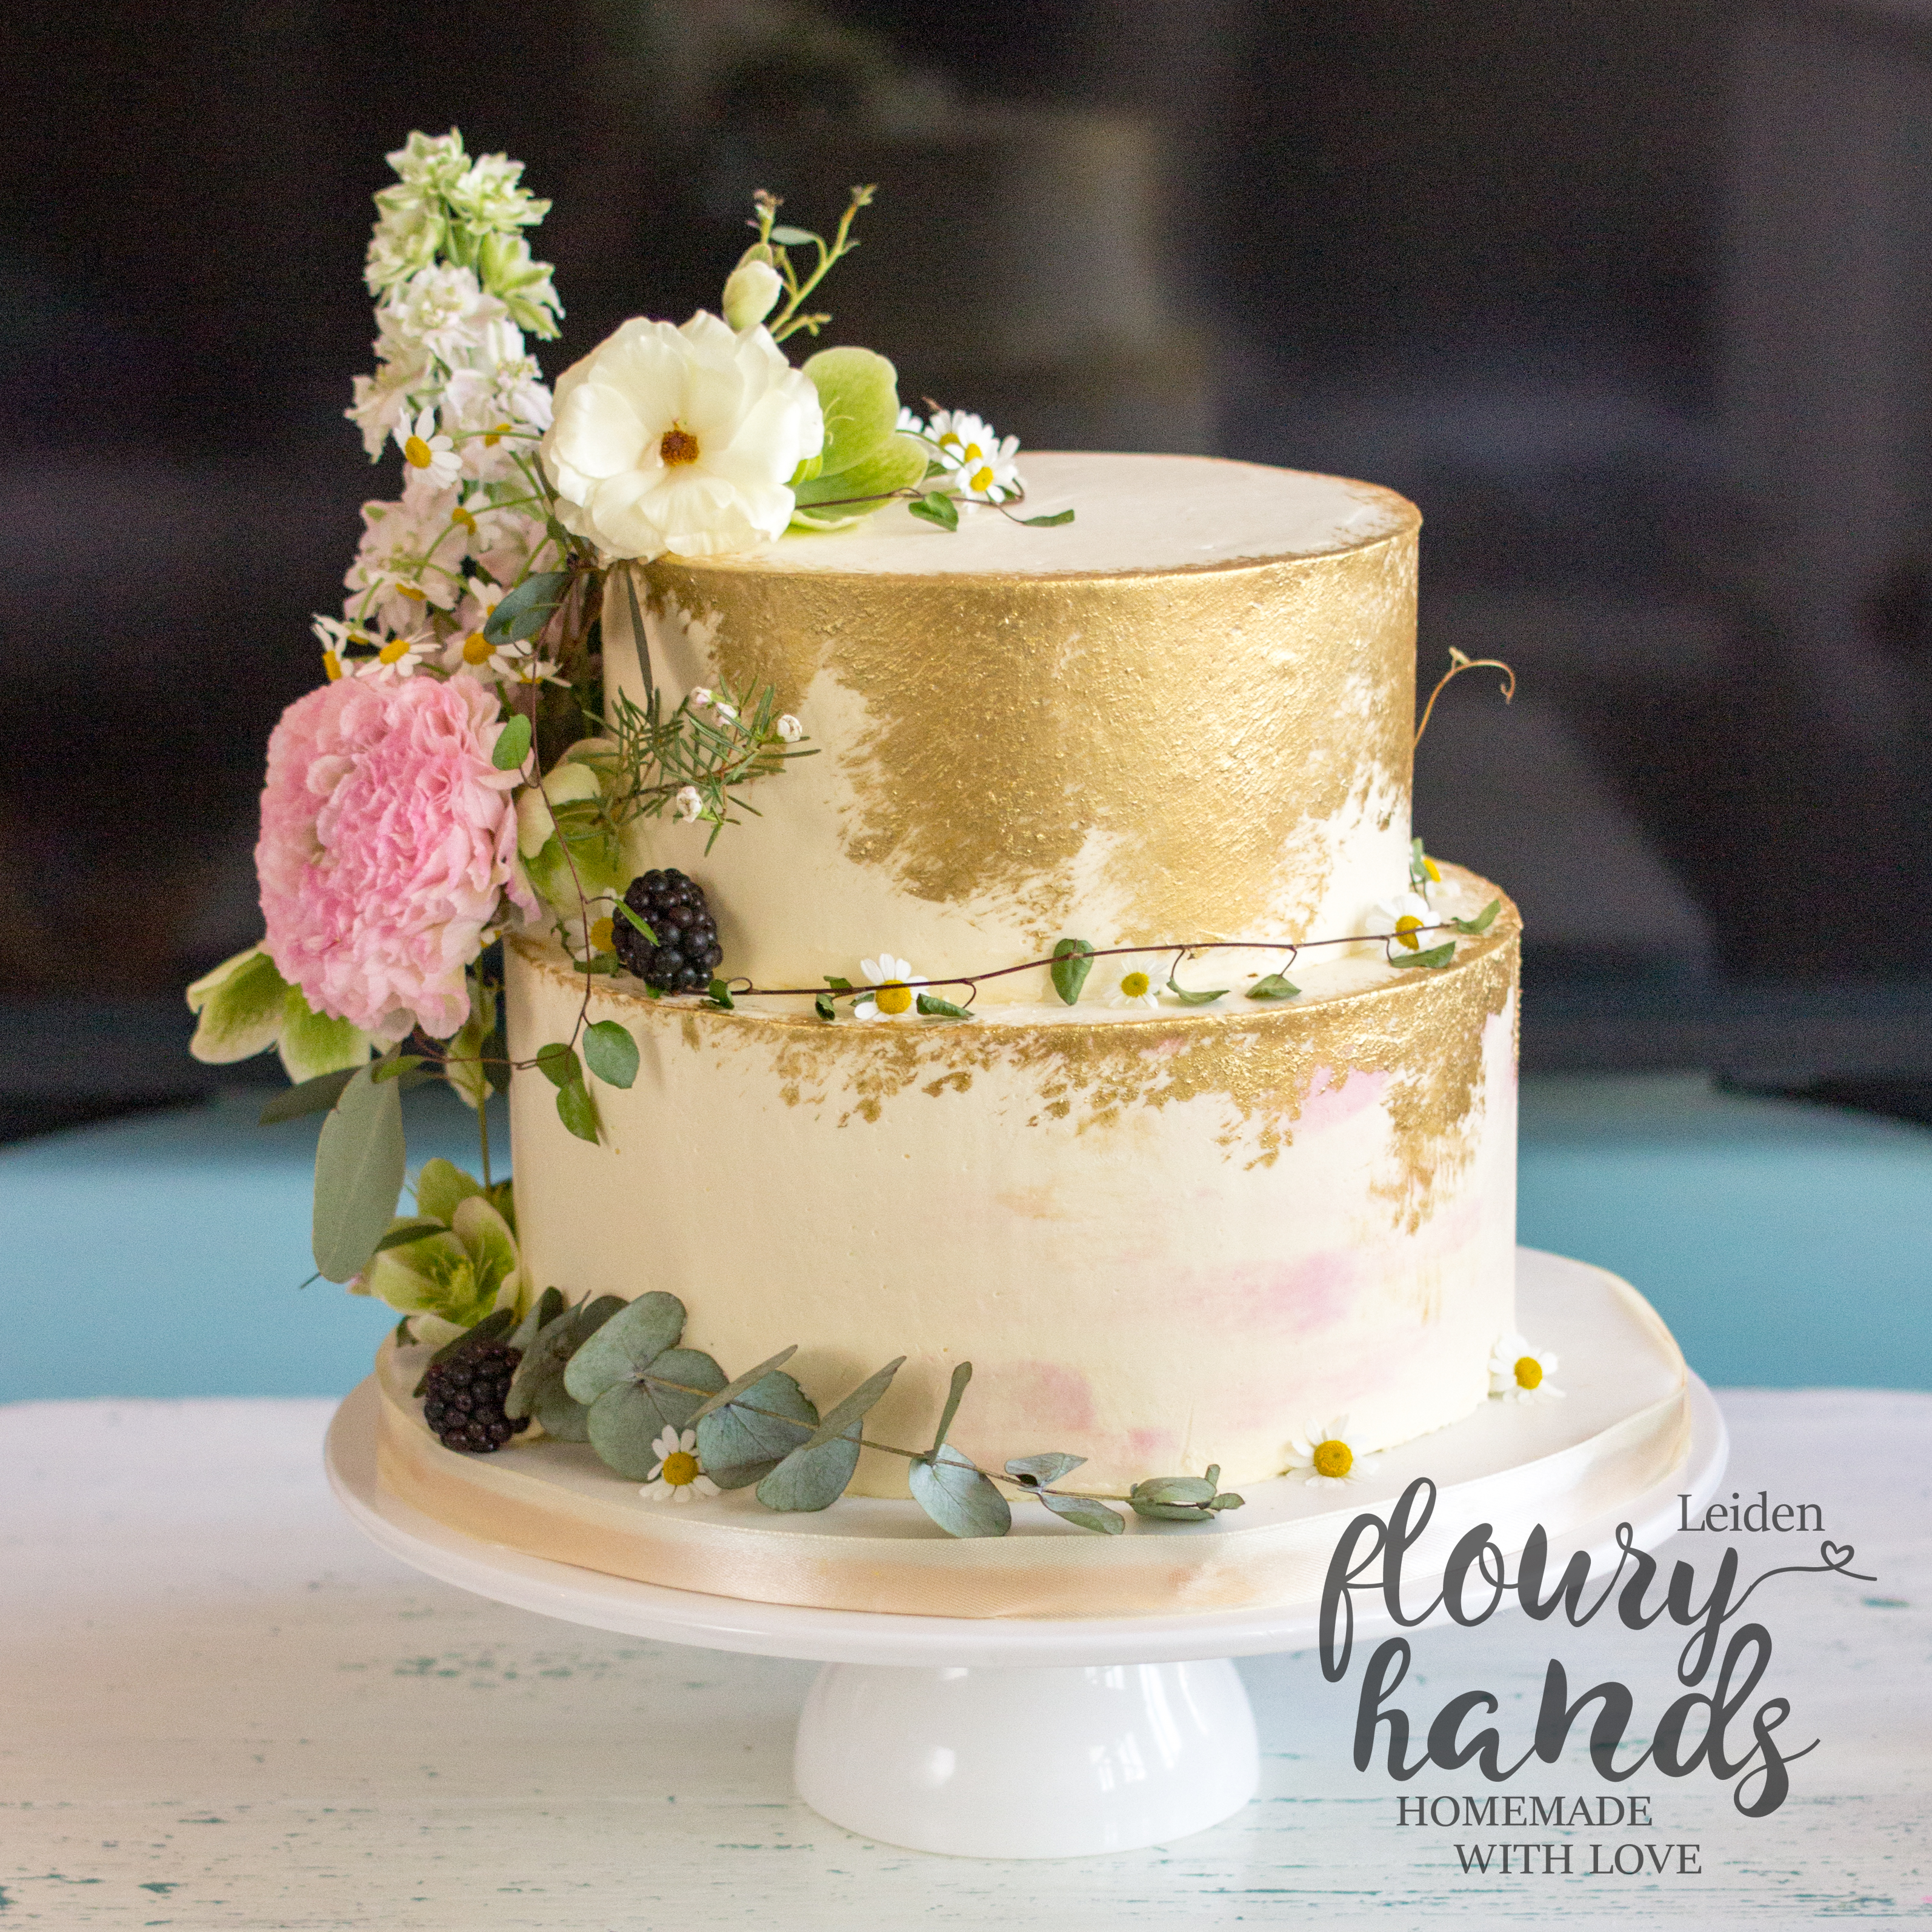 Wedding | Floury Hands